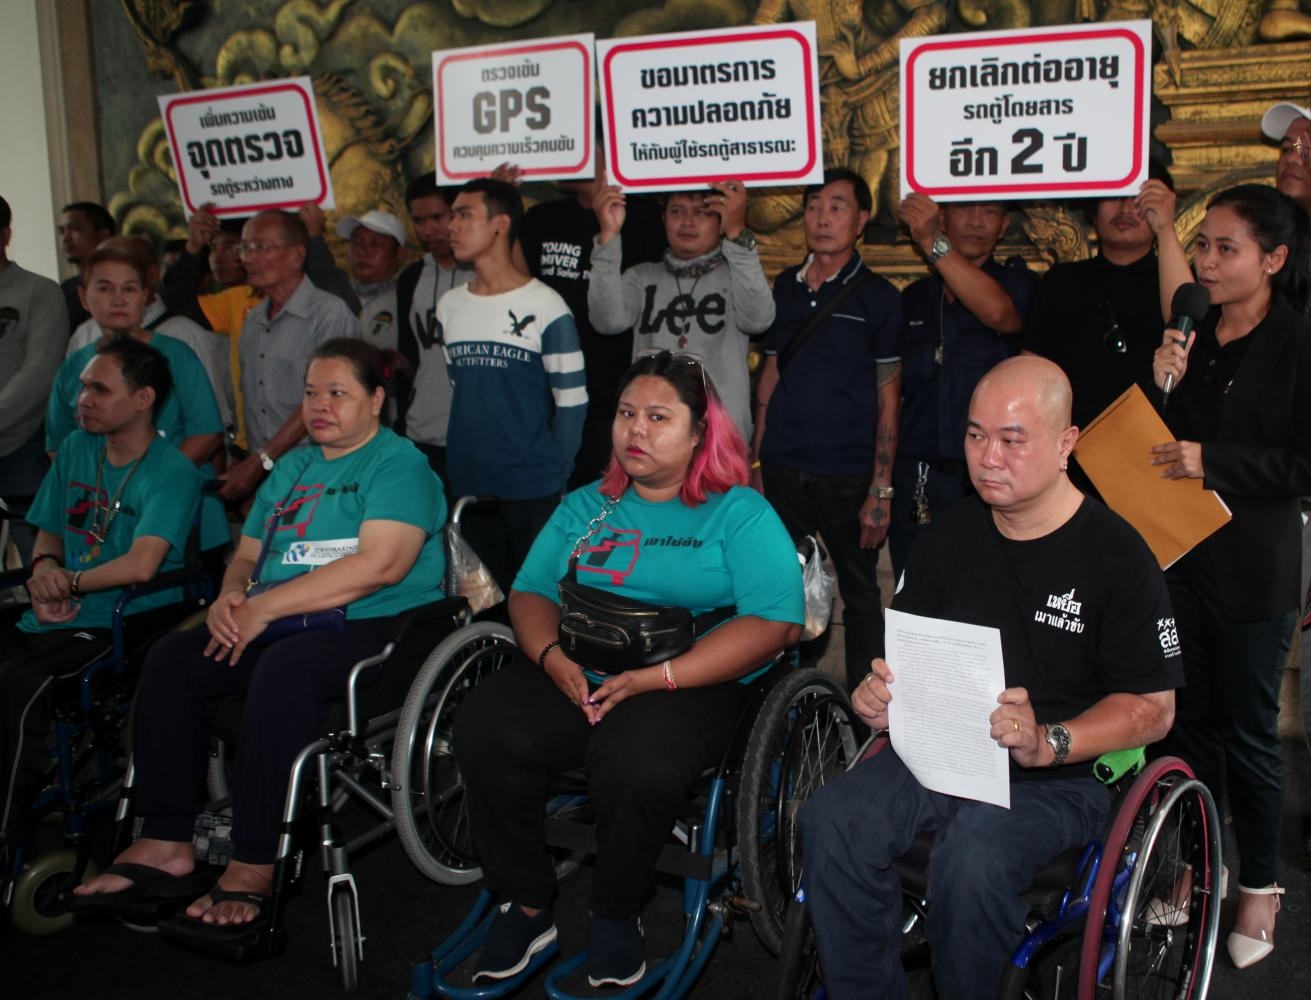 Activists, including wheelchair-bound victims of road accidents, rally at the Transport Ministry to call for tighter safety standards on public transport and demand the replacement of old public vans be made compulsory. Apichart Jinakul